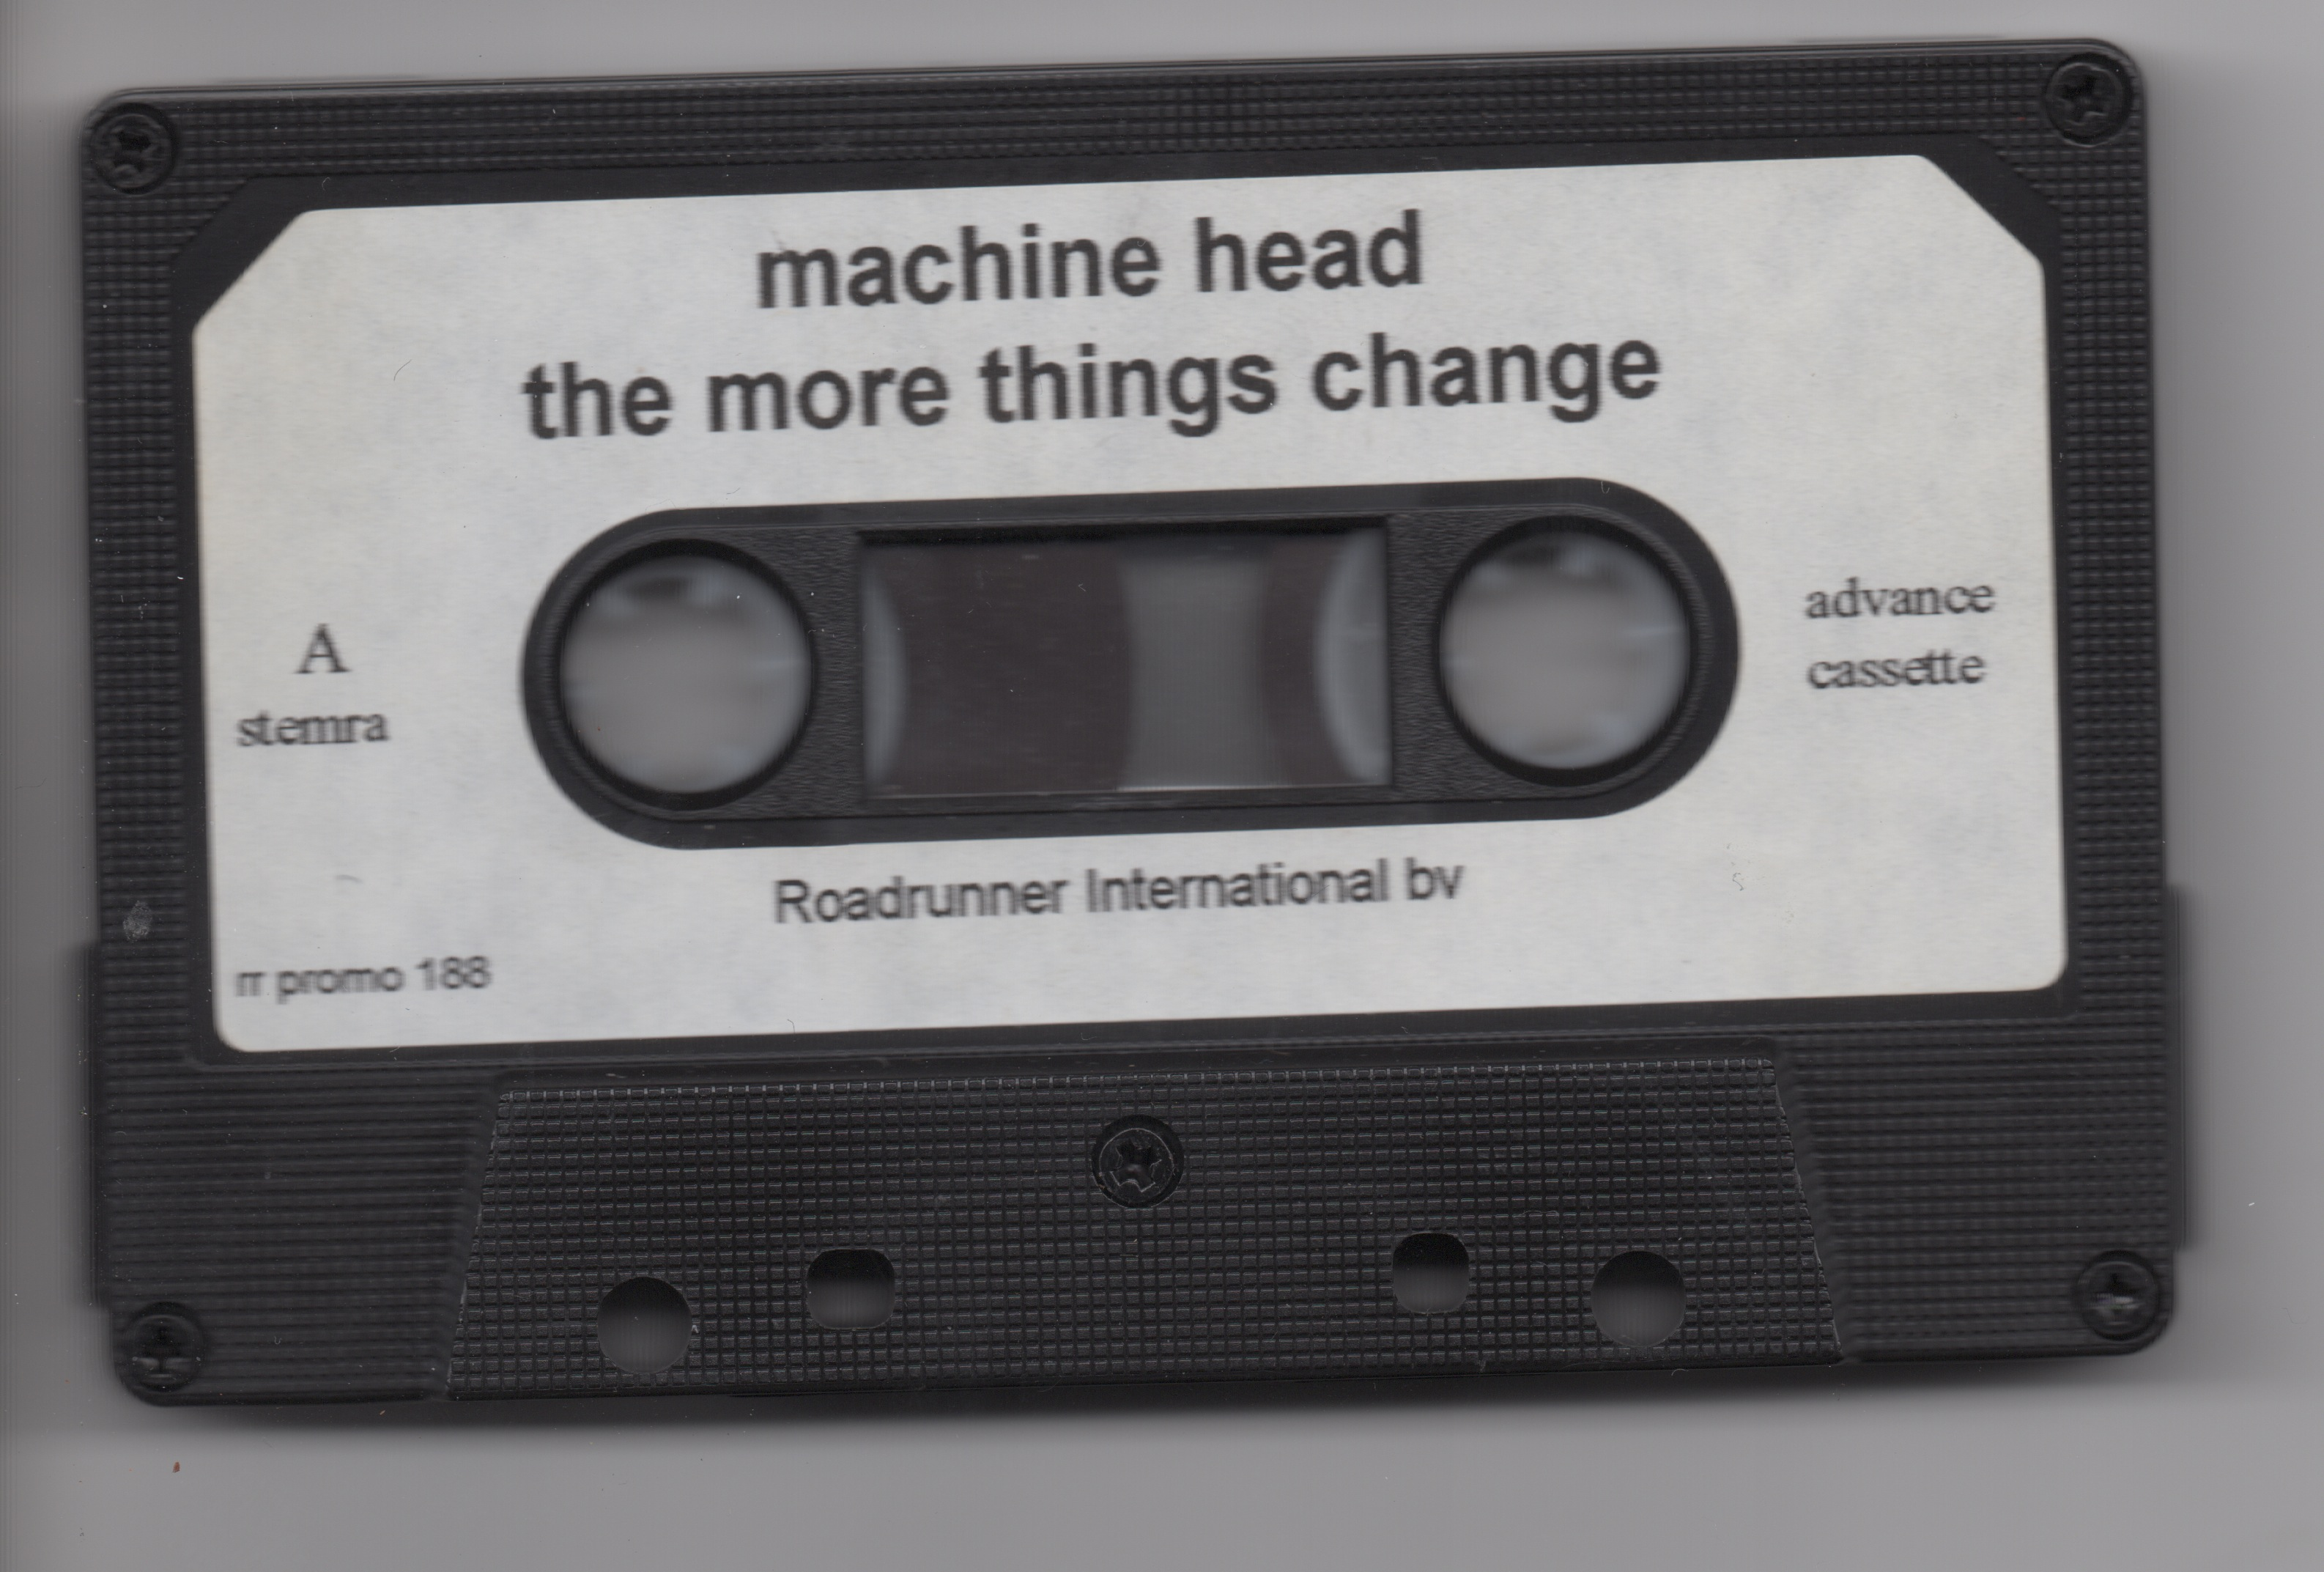 the more things change machine